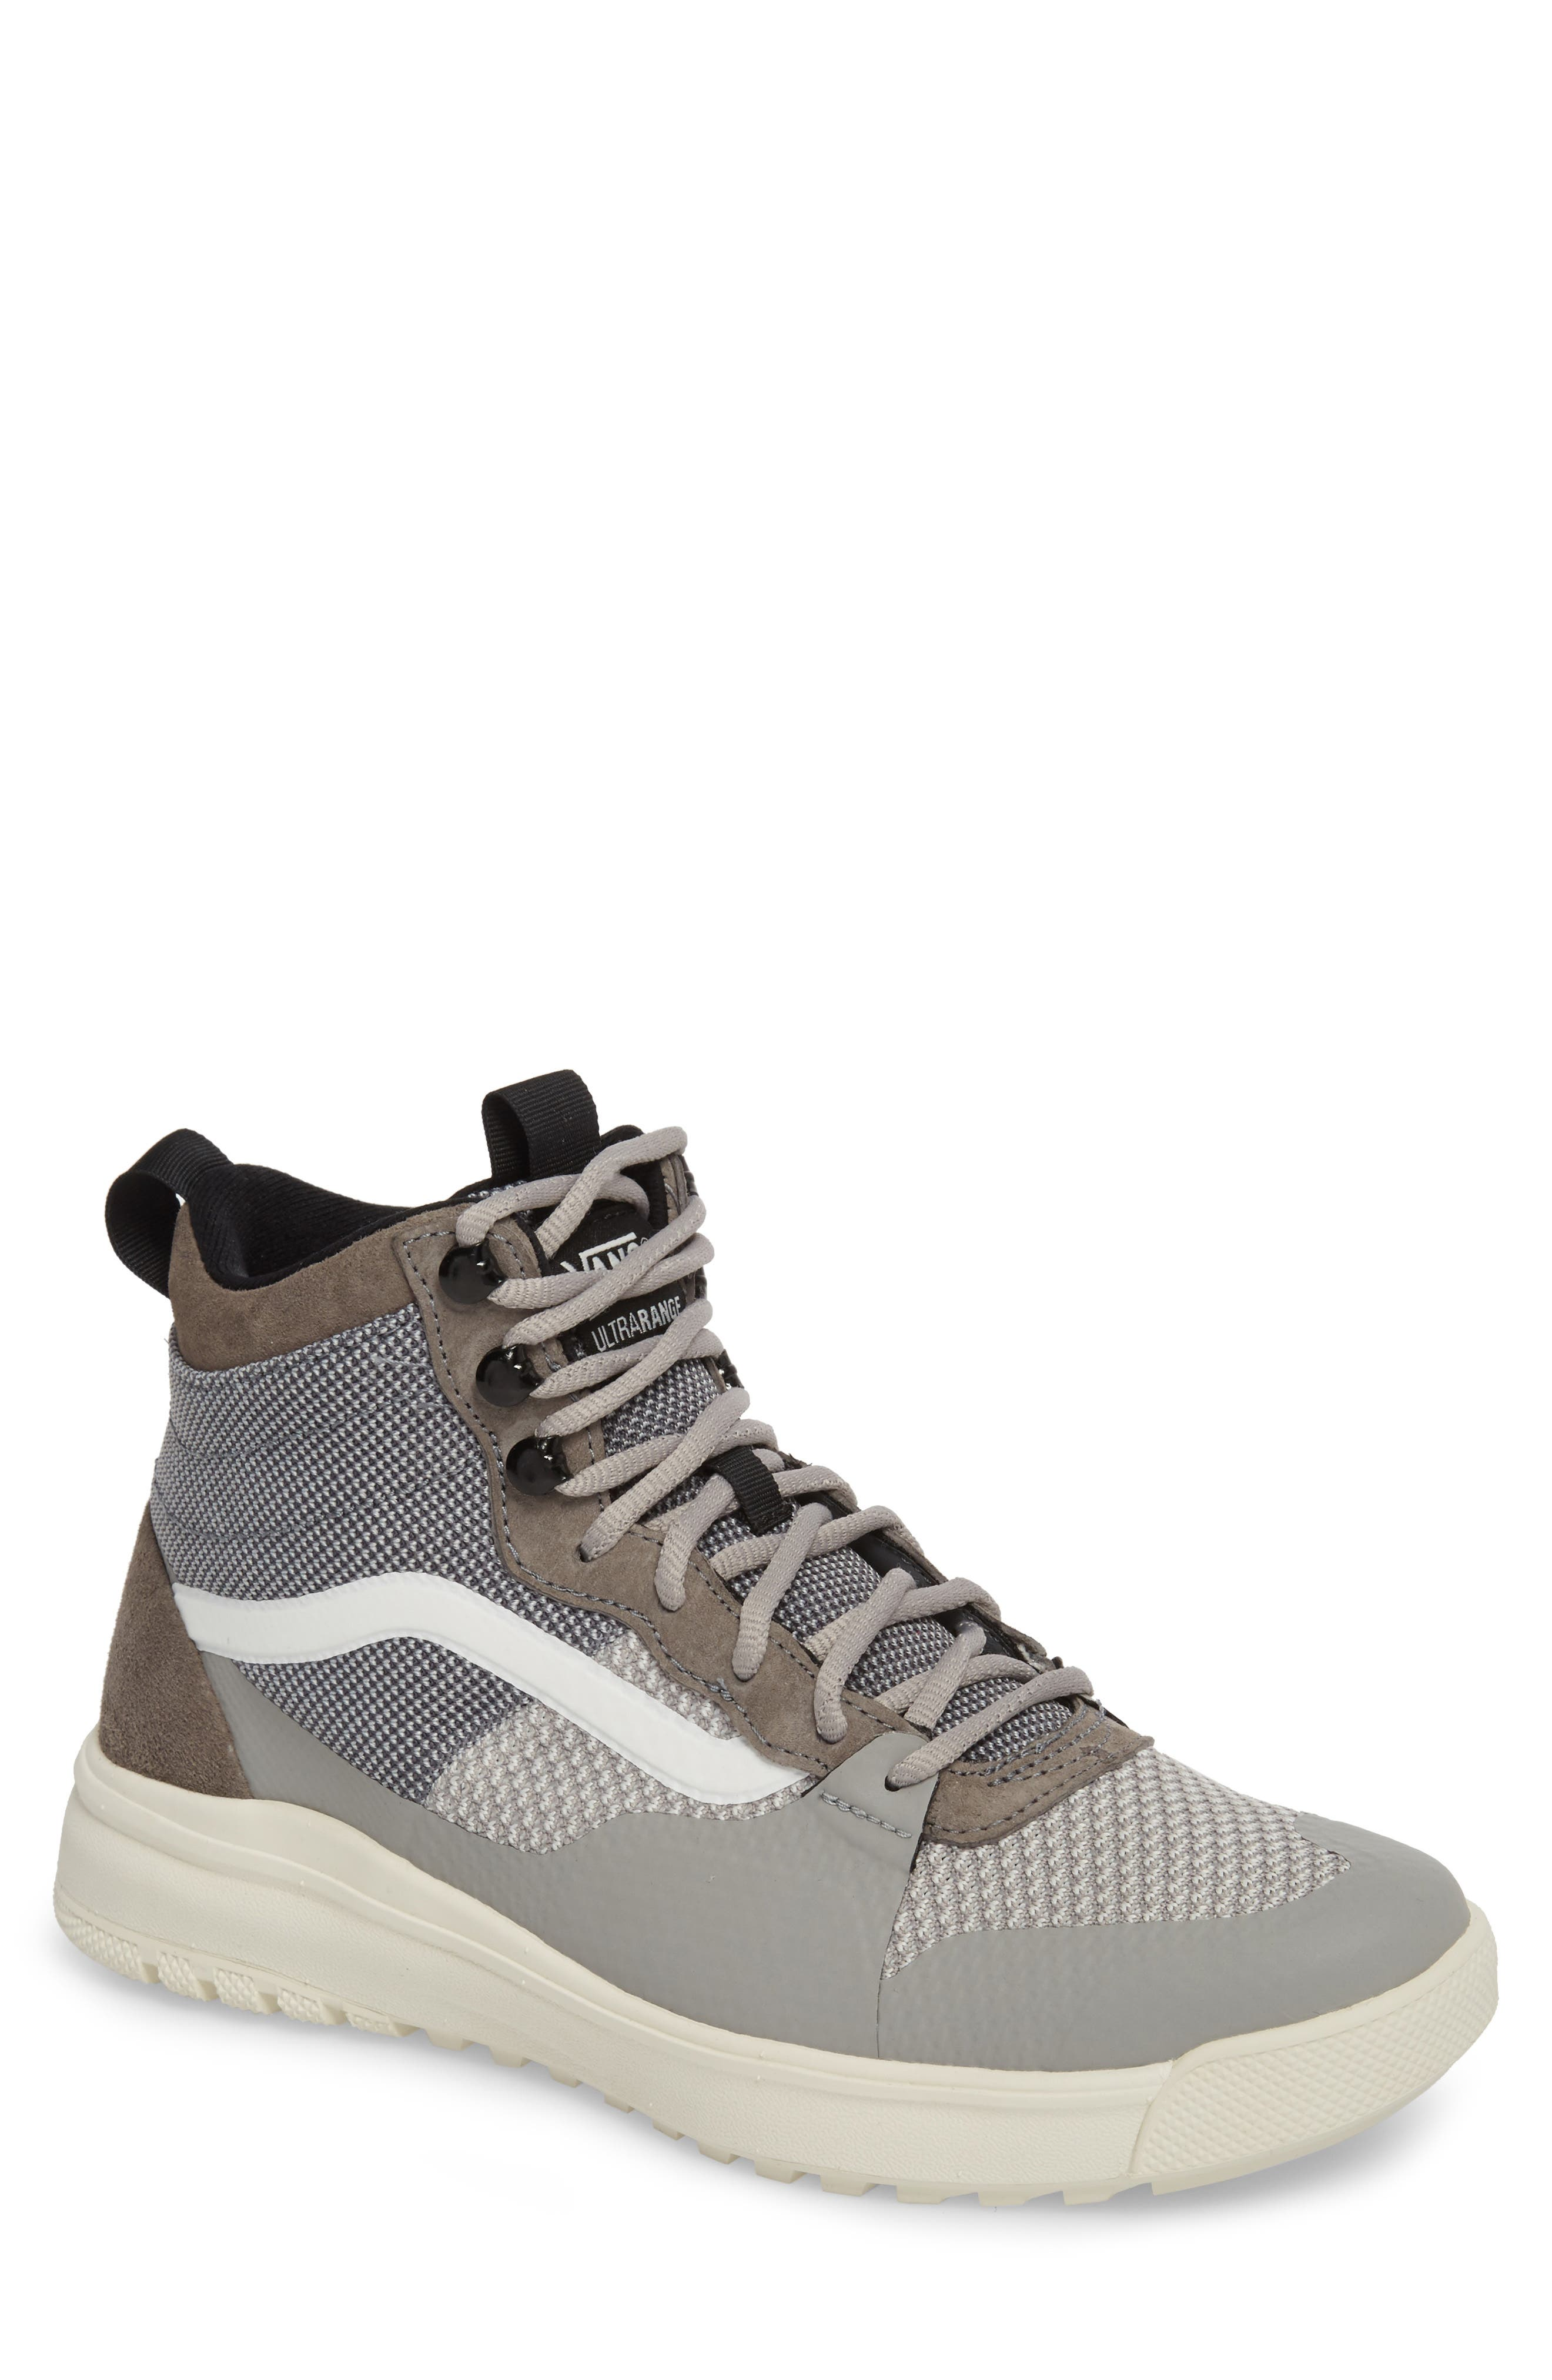 UltraRange DX High Top Sneaker,                             Main thumbnail 1, color,                             Pewter/ Drizzle